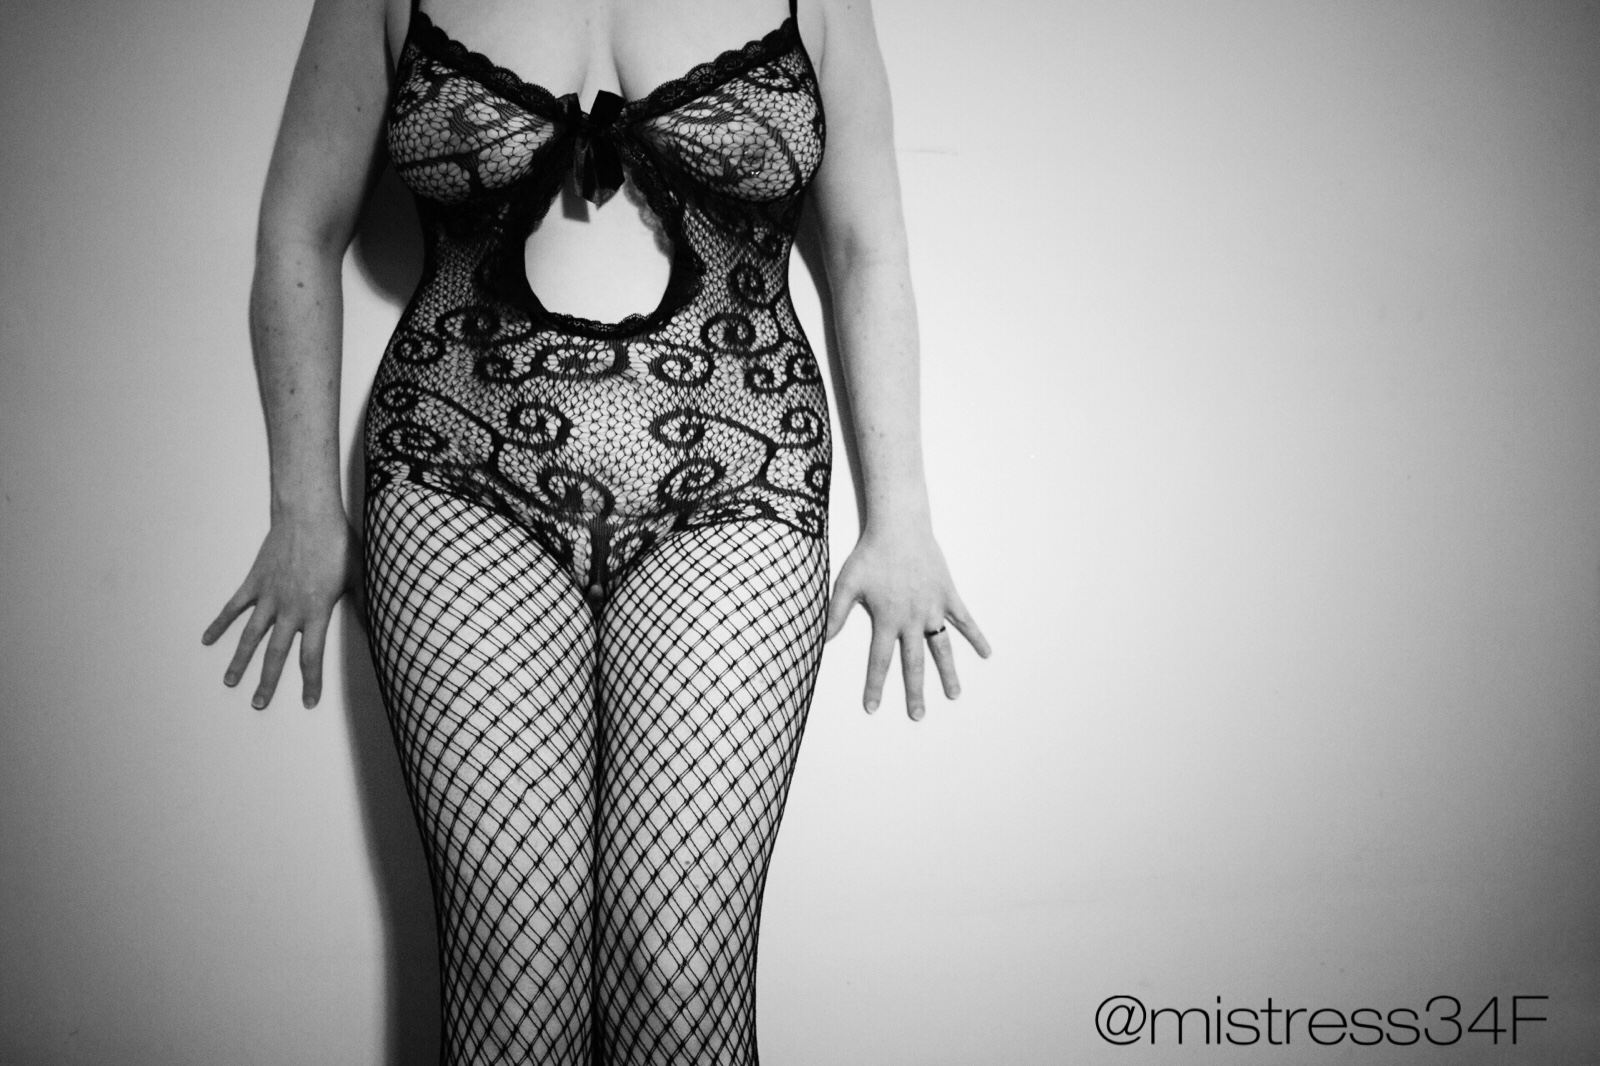 Day 25 Bodystocking £3 Shocking! #SinfulSunday